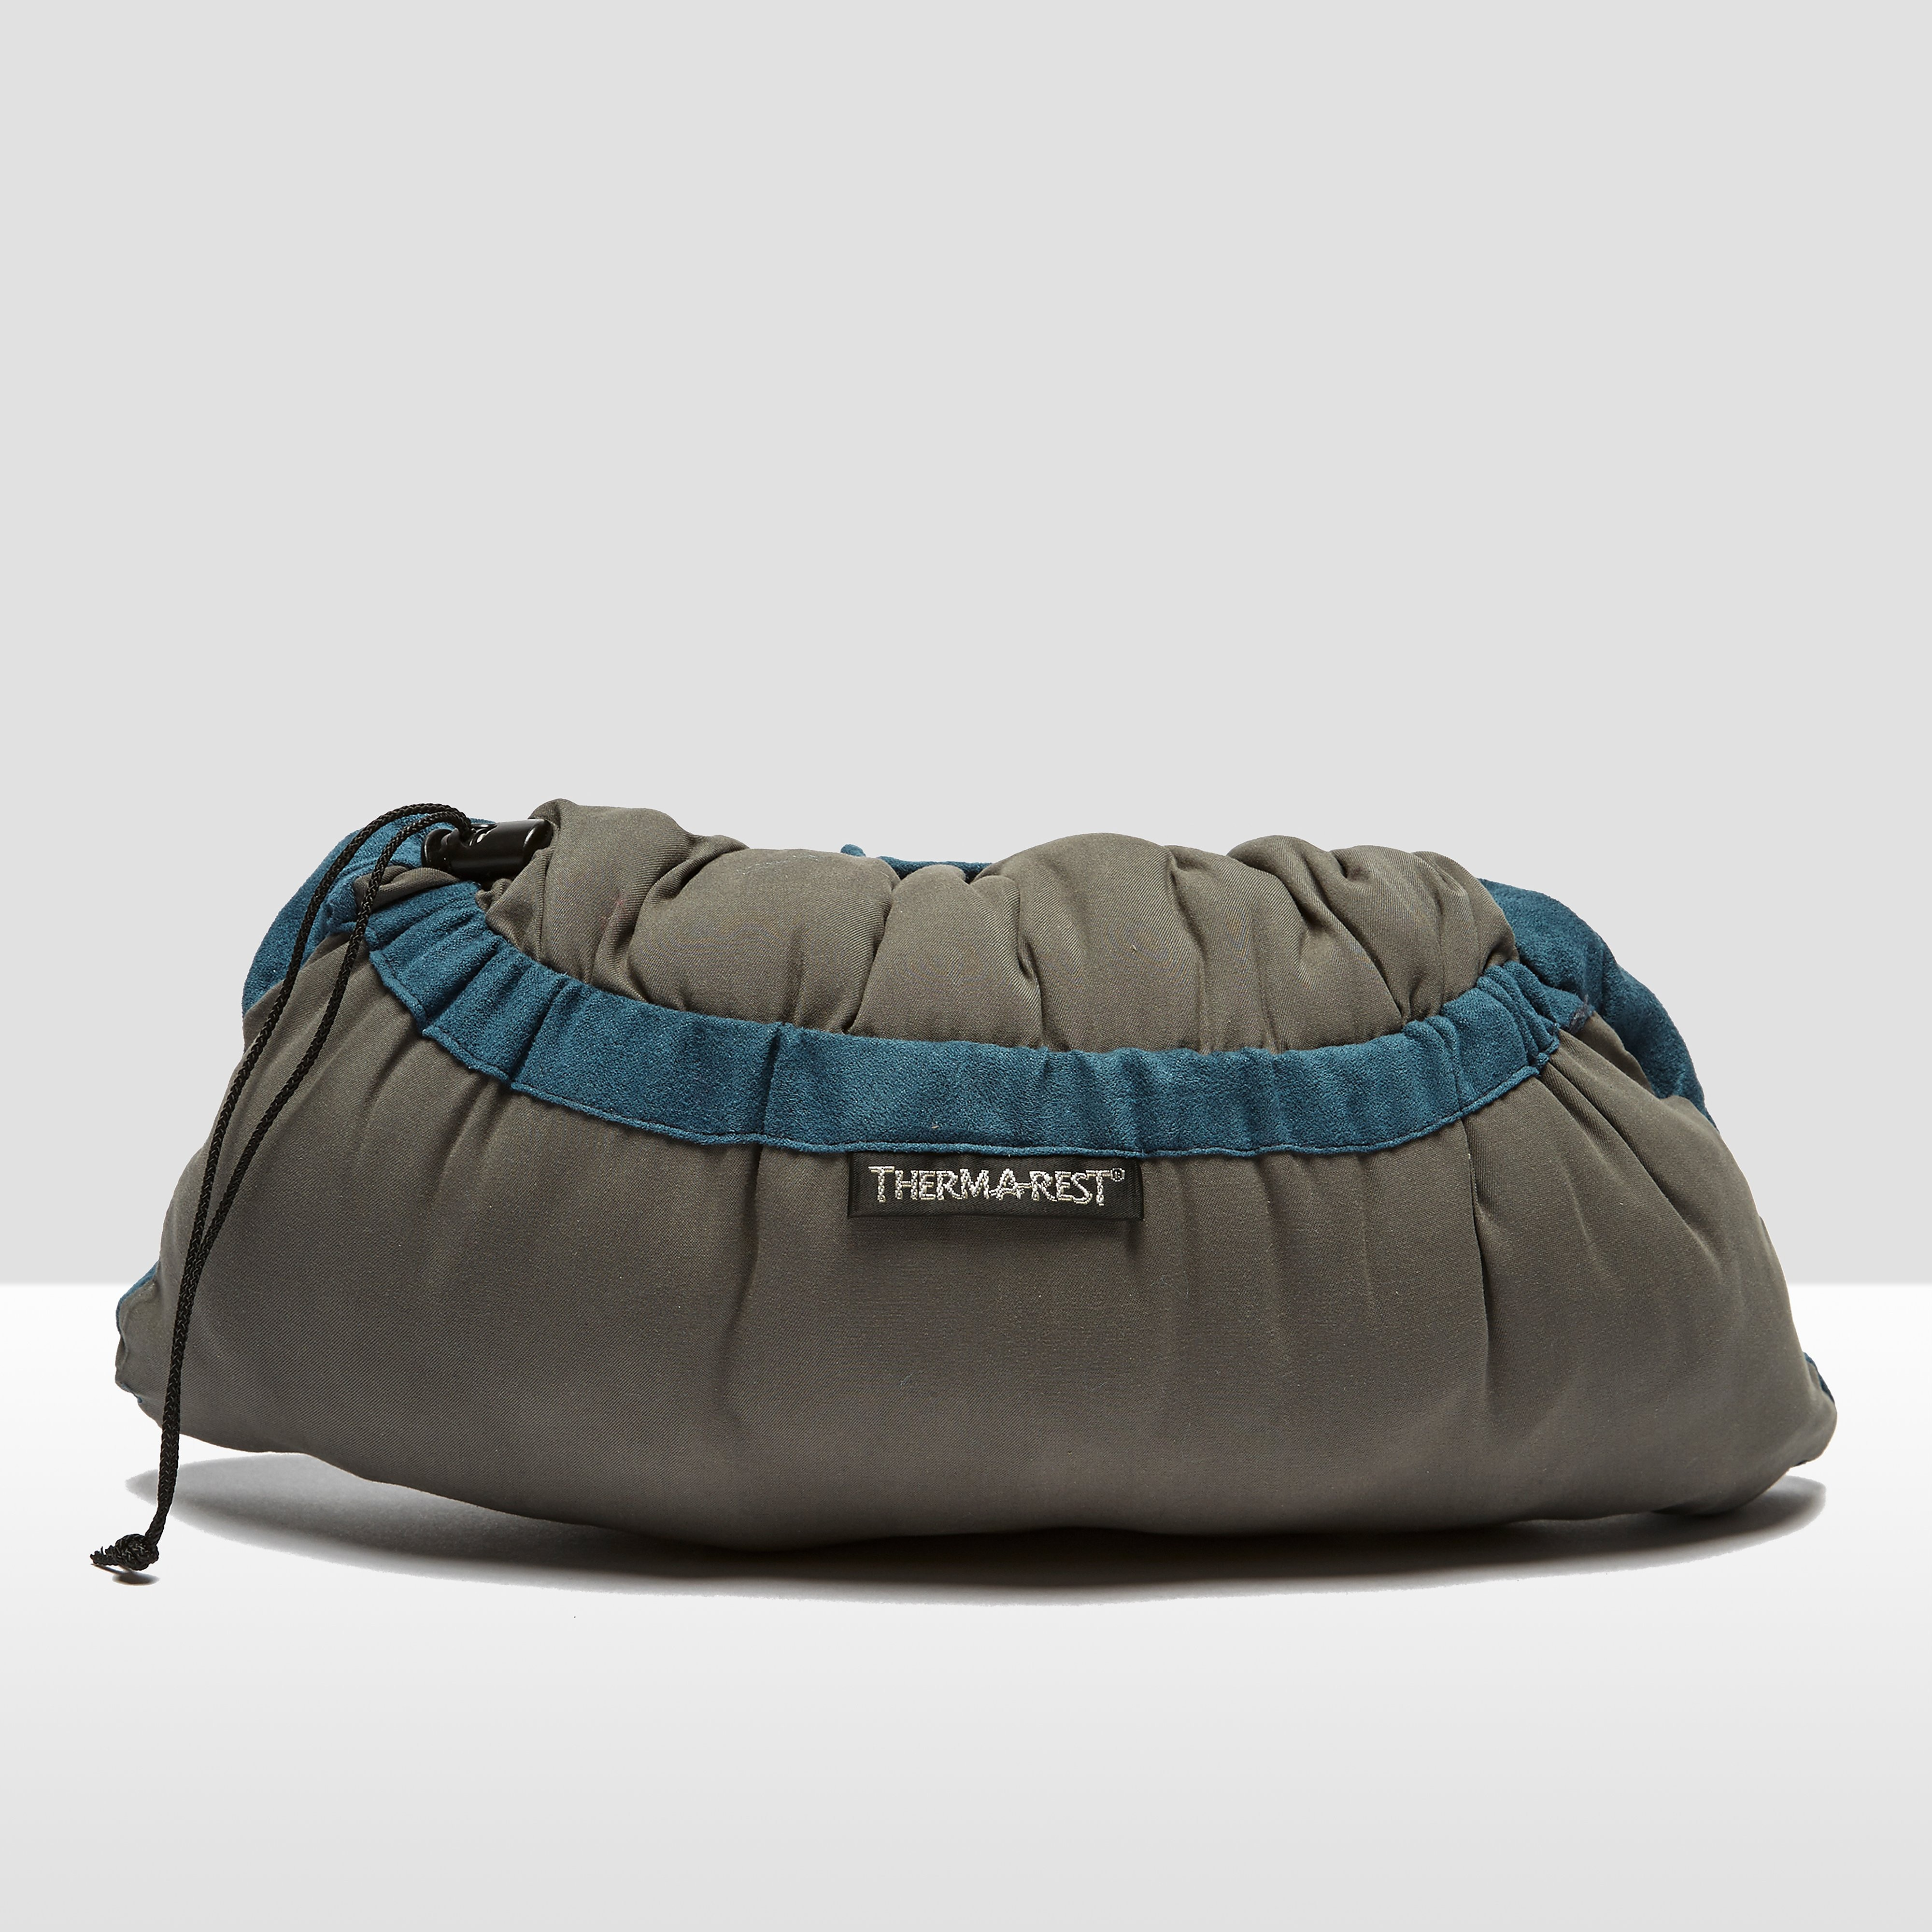 THERMAREST Compressible Medium Pillow